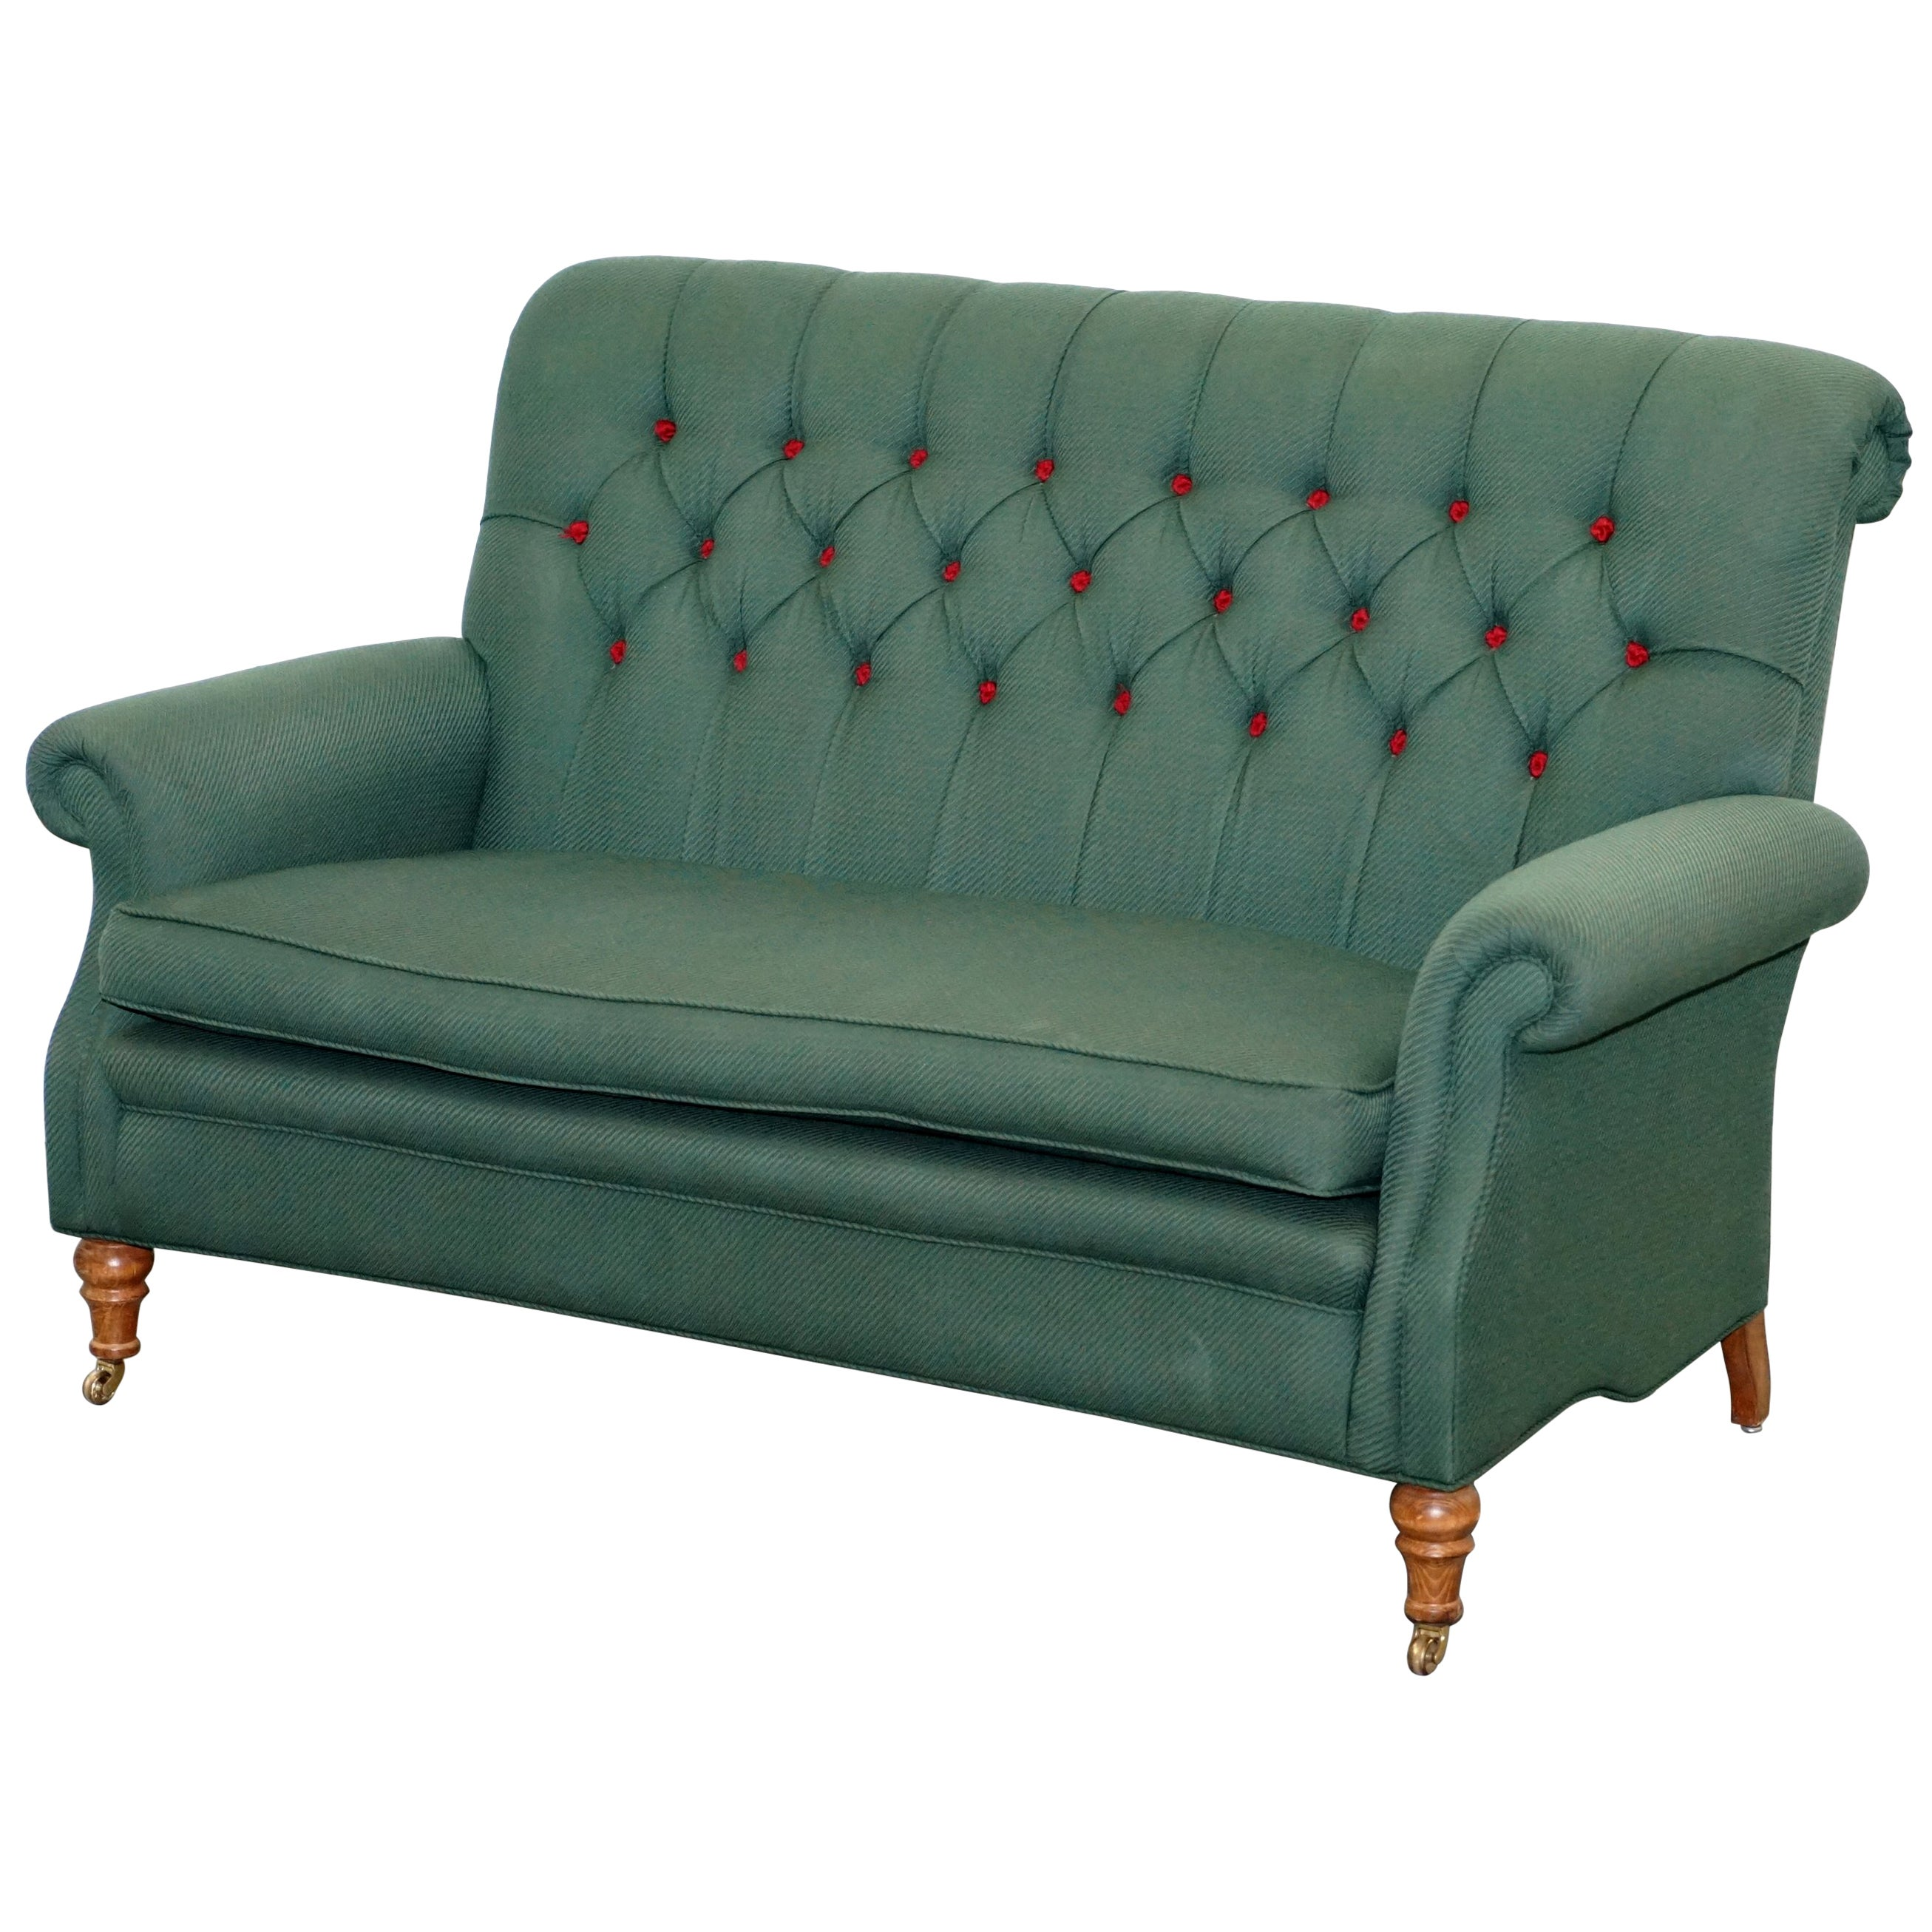 Wellington model howard style chesterfield green upholstery two seat bench sofa for sale at 1stdibs